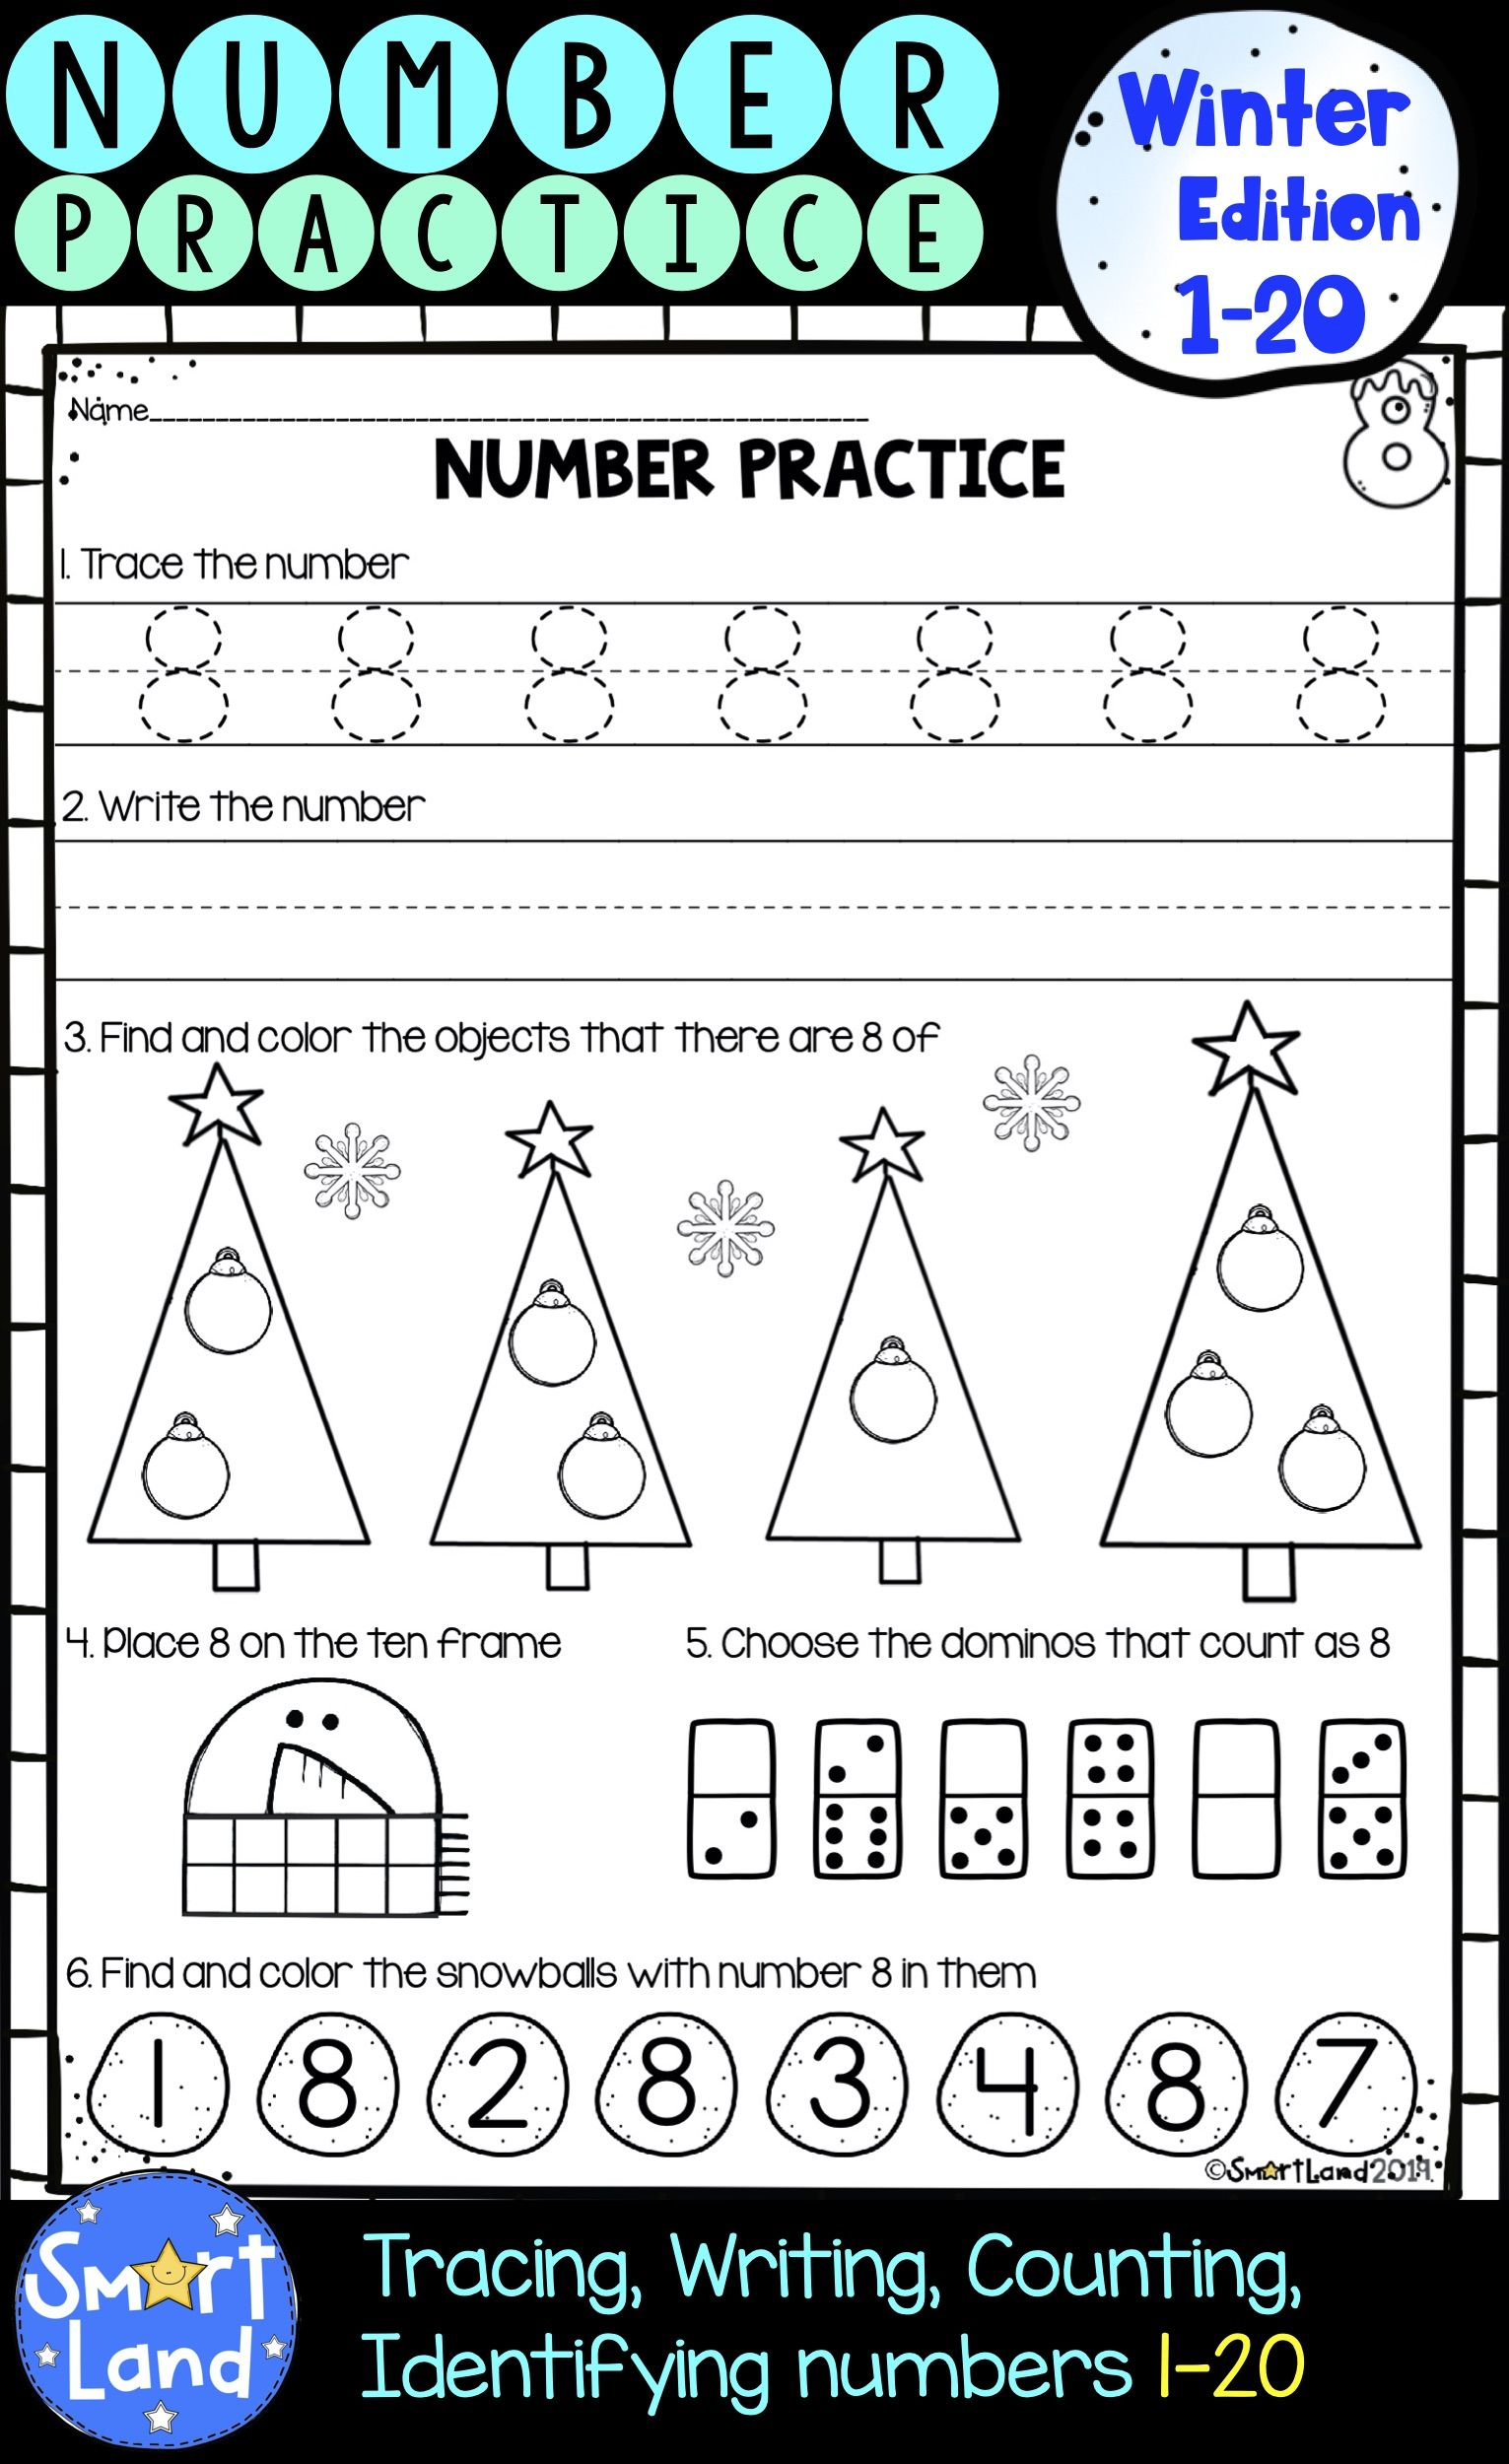 Numbers 1 20 Handwriting And Counting Practice Worksheets Winter Edition Numbers Kindergarten Math Number Sense Comparing Numbers Kindergarten [ 2500 x 1531 Pixel ]